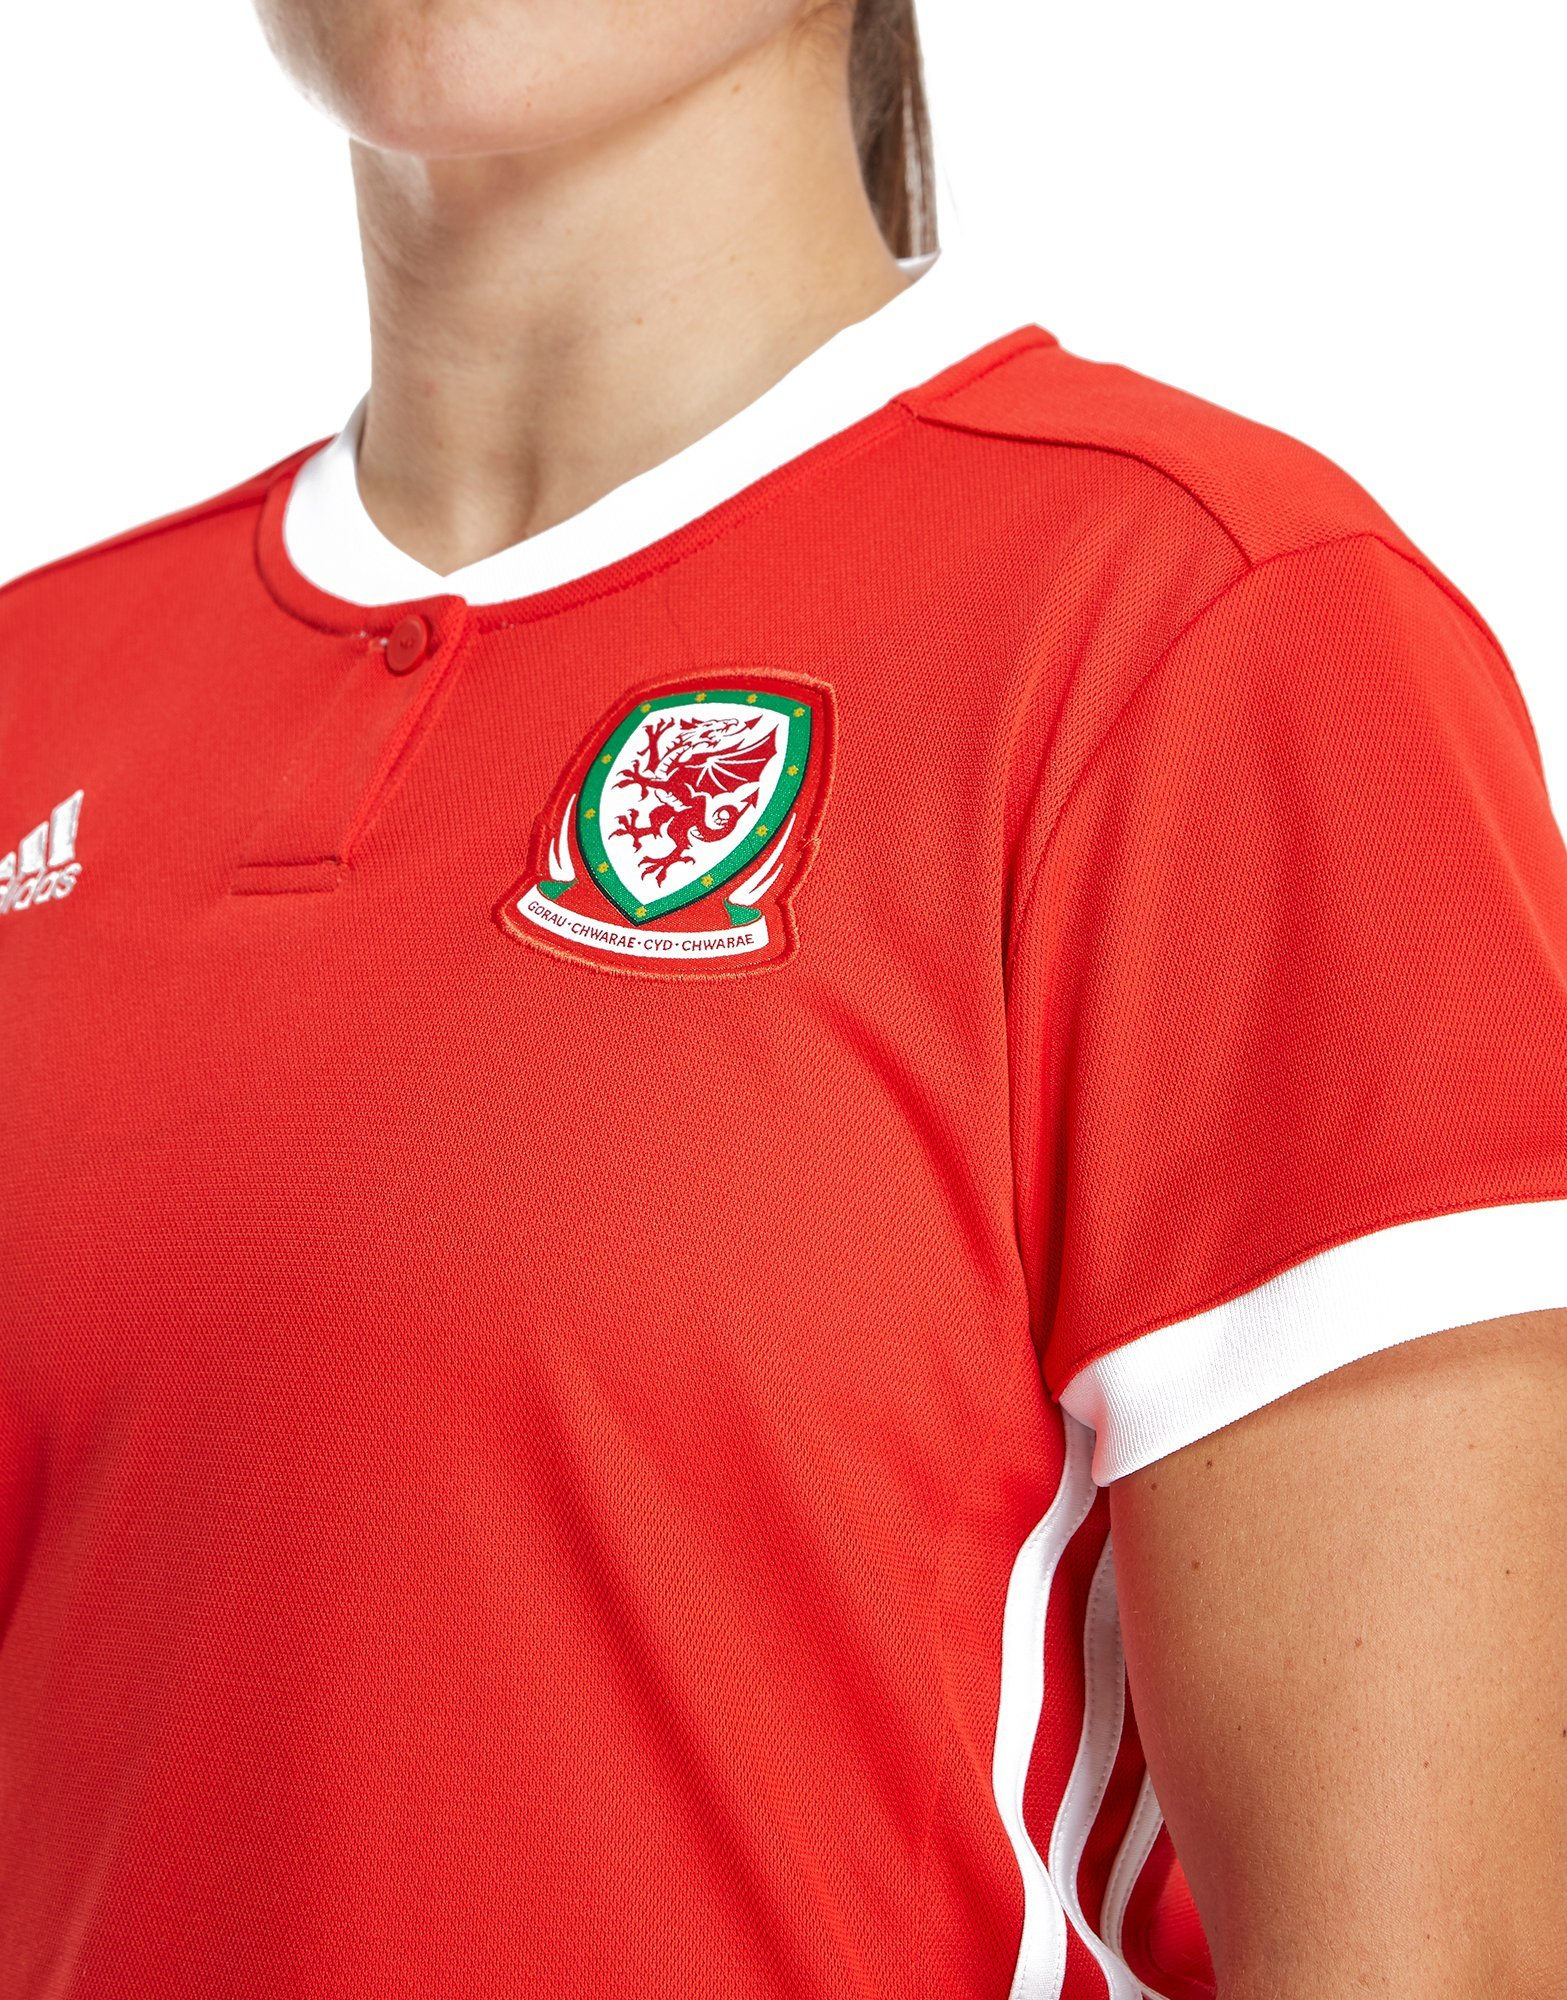 adidas Wales 2018/19 Home Shirt Women's